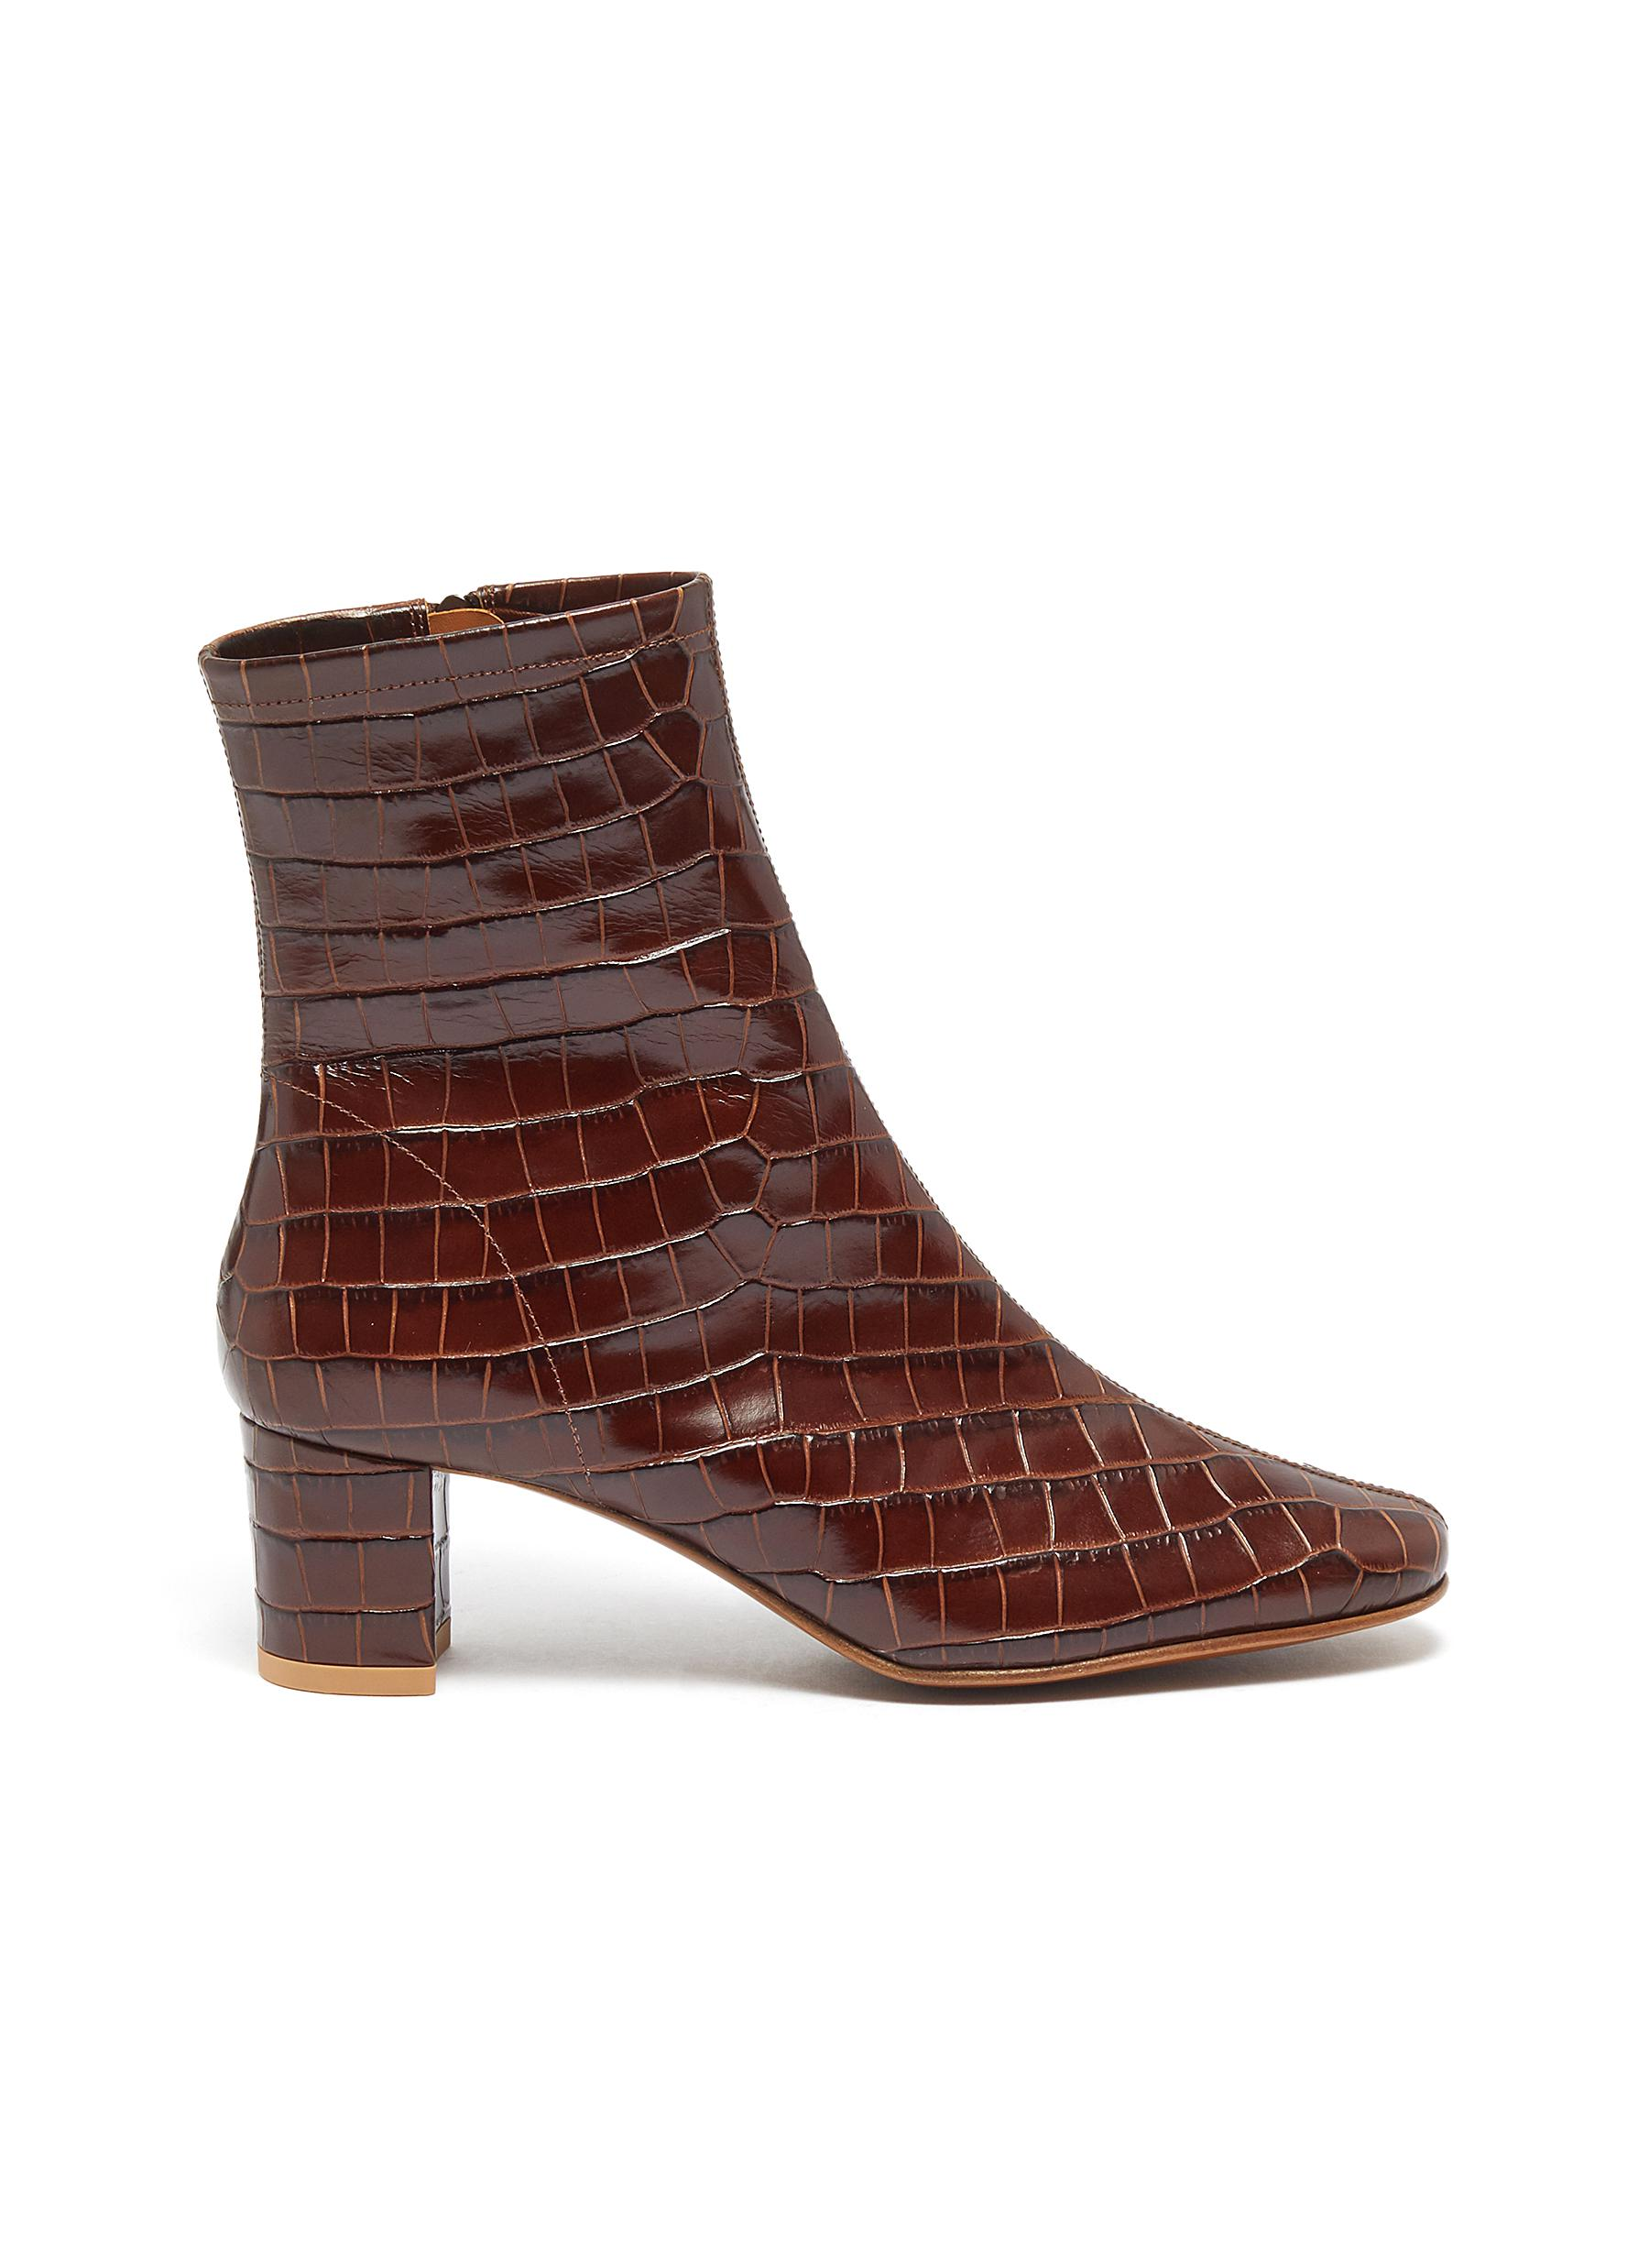 Sofia croc embossed leather ankle boots by By Far